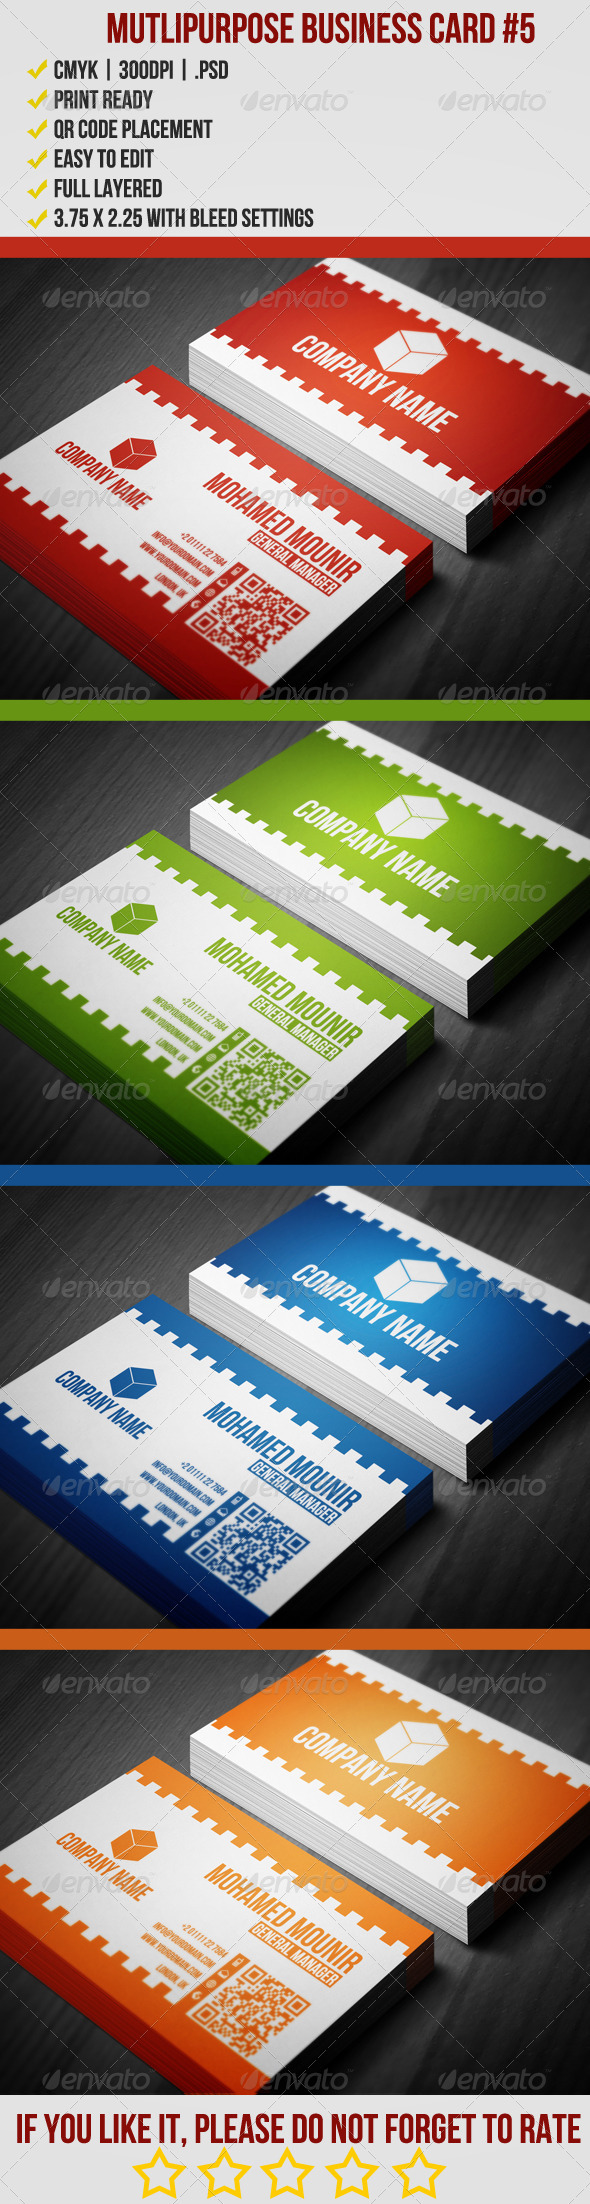 GraphicRiver Multipurpose Business Card 5 3902750